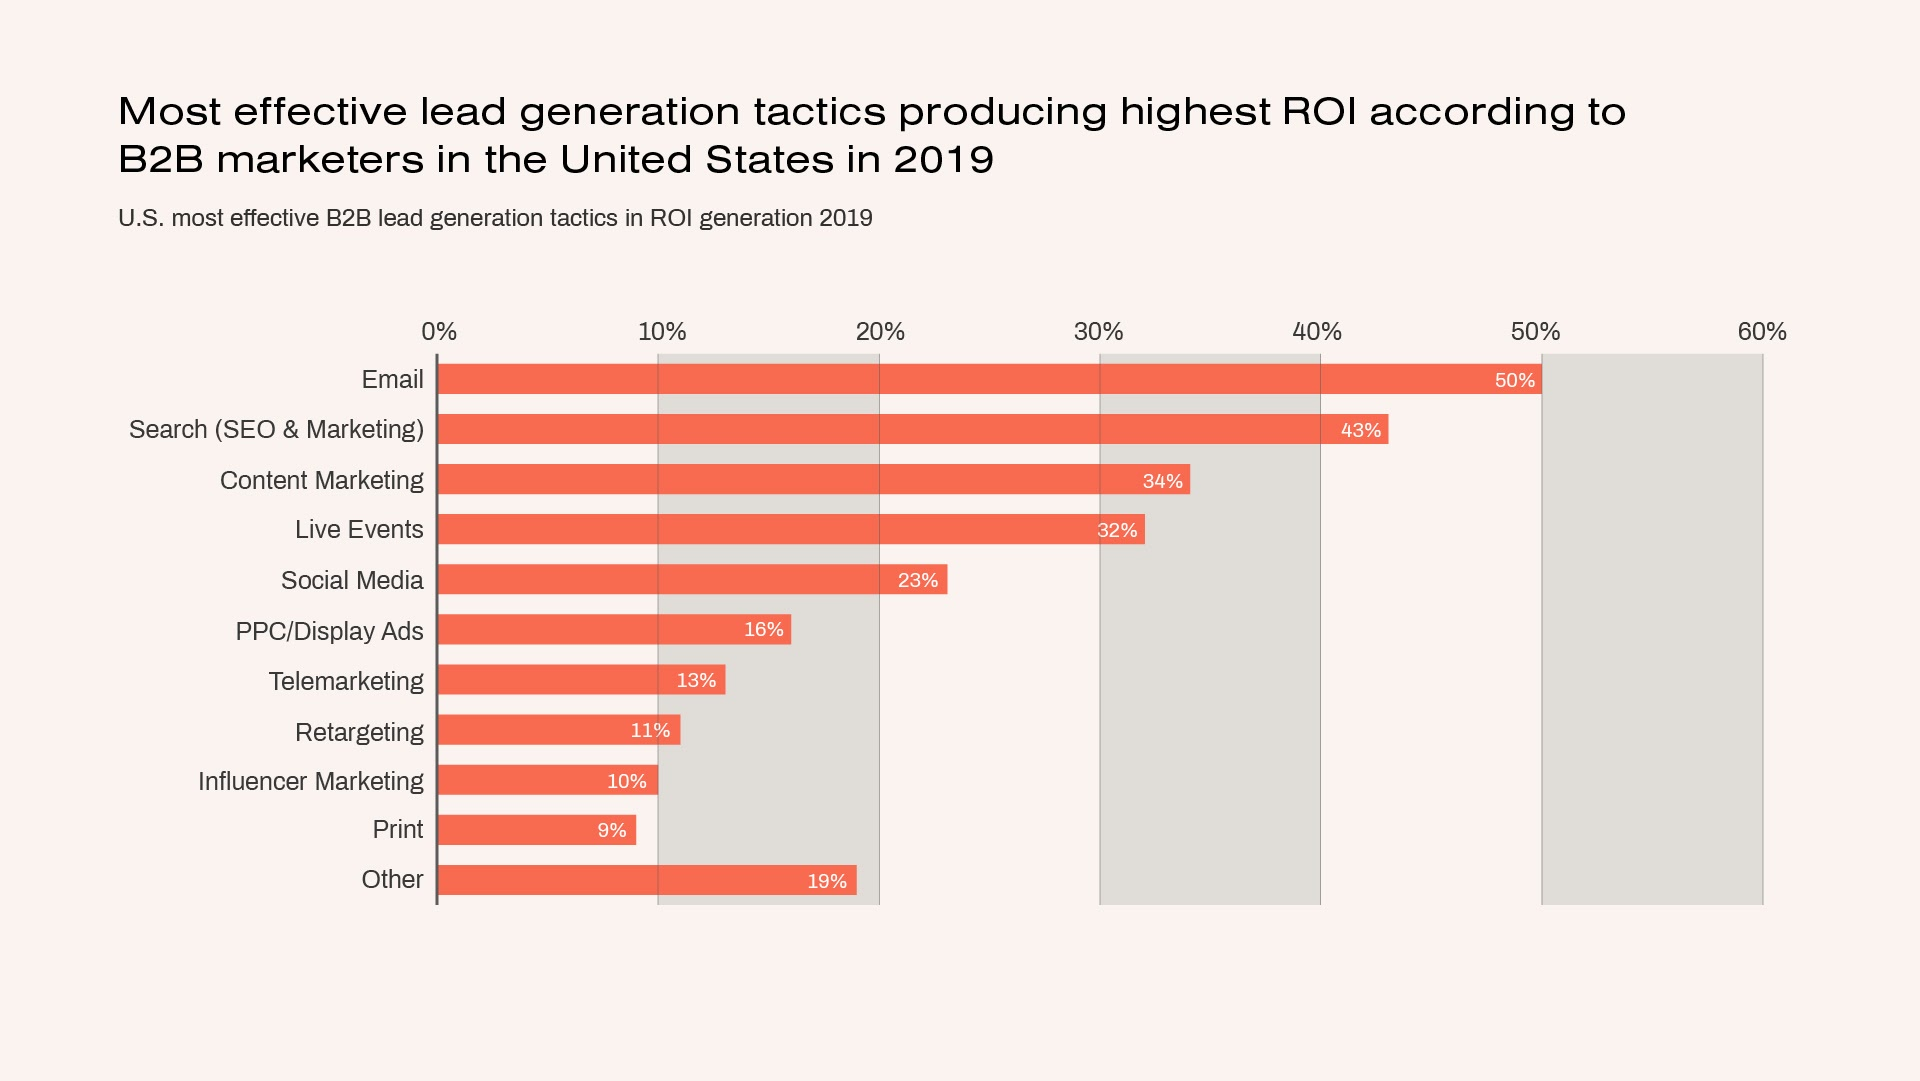 Most effective B2B lead generation tactics by ROI in 2019